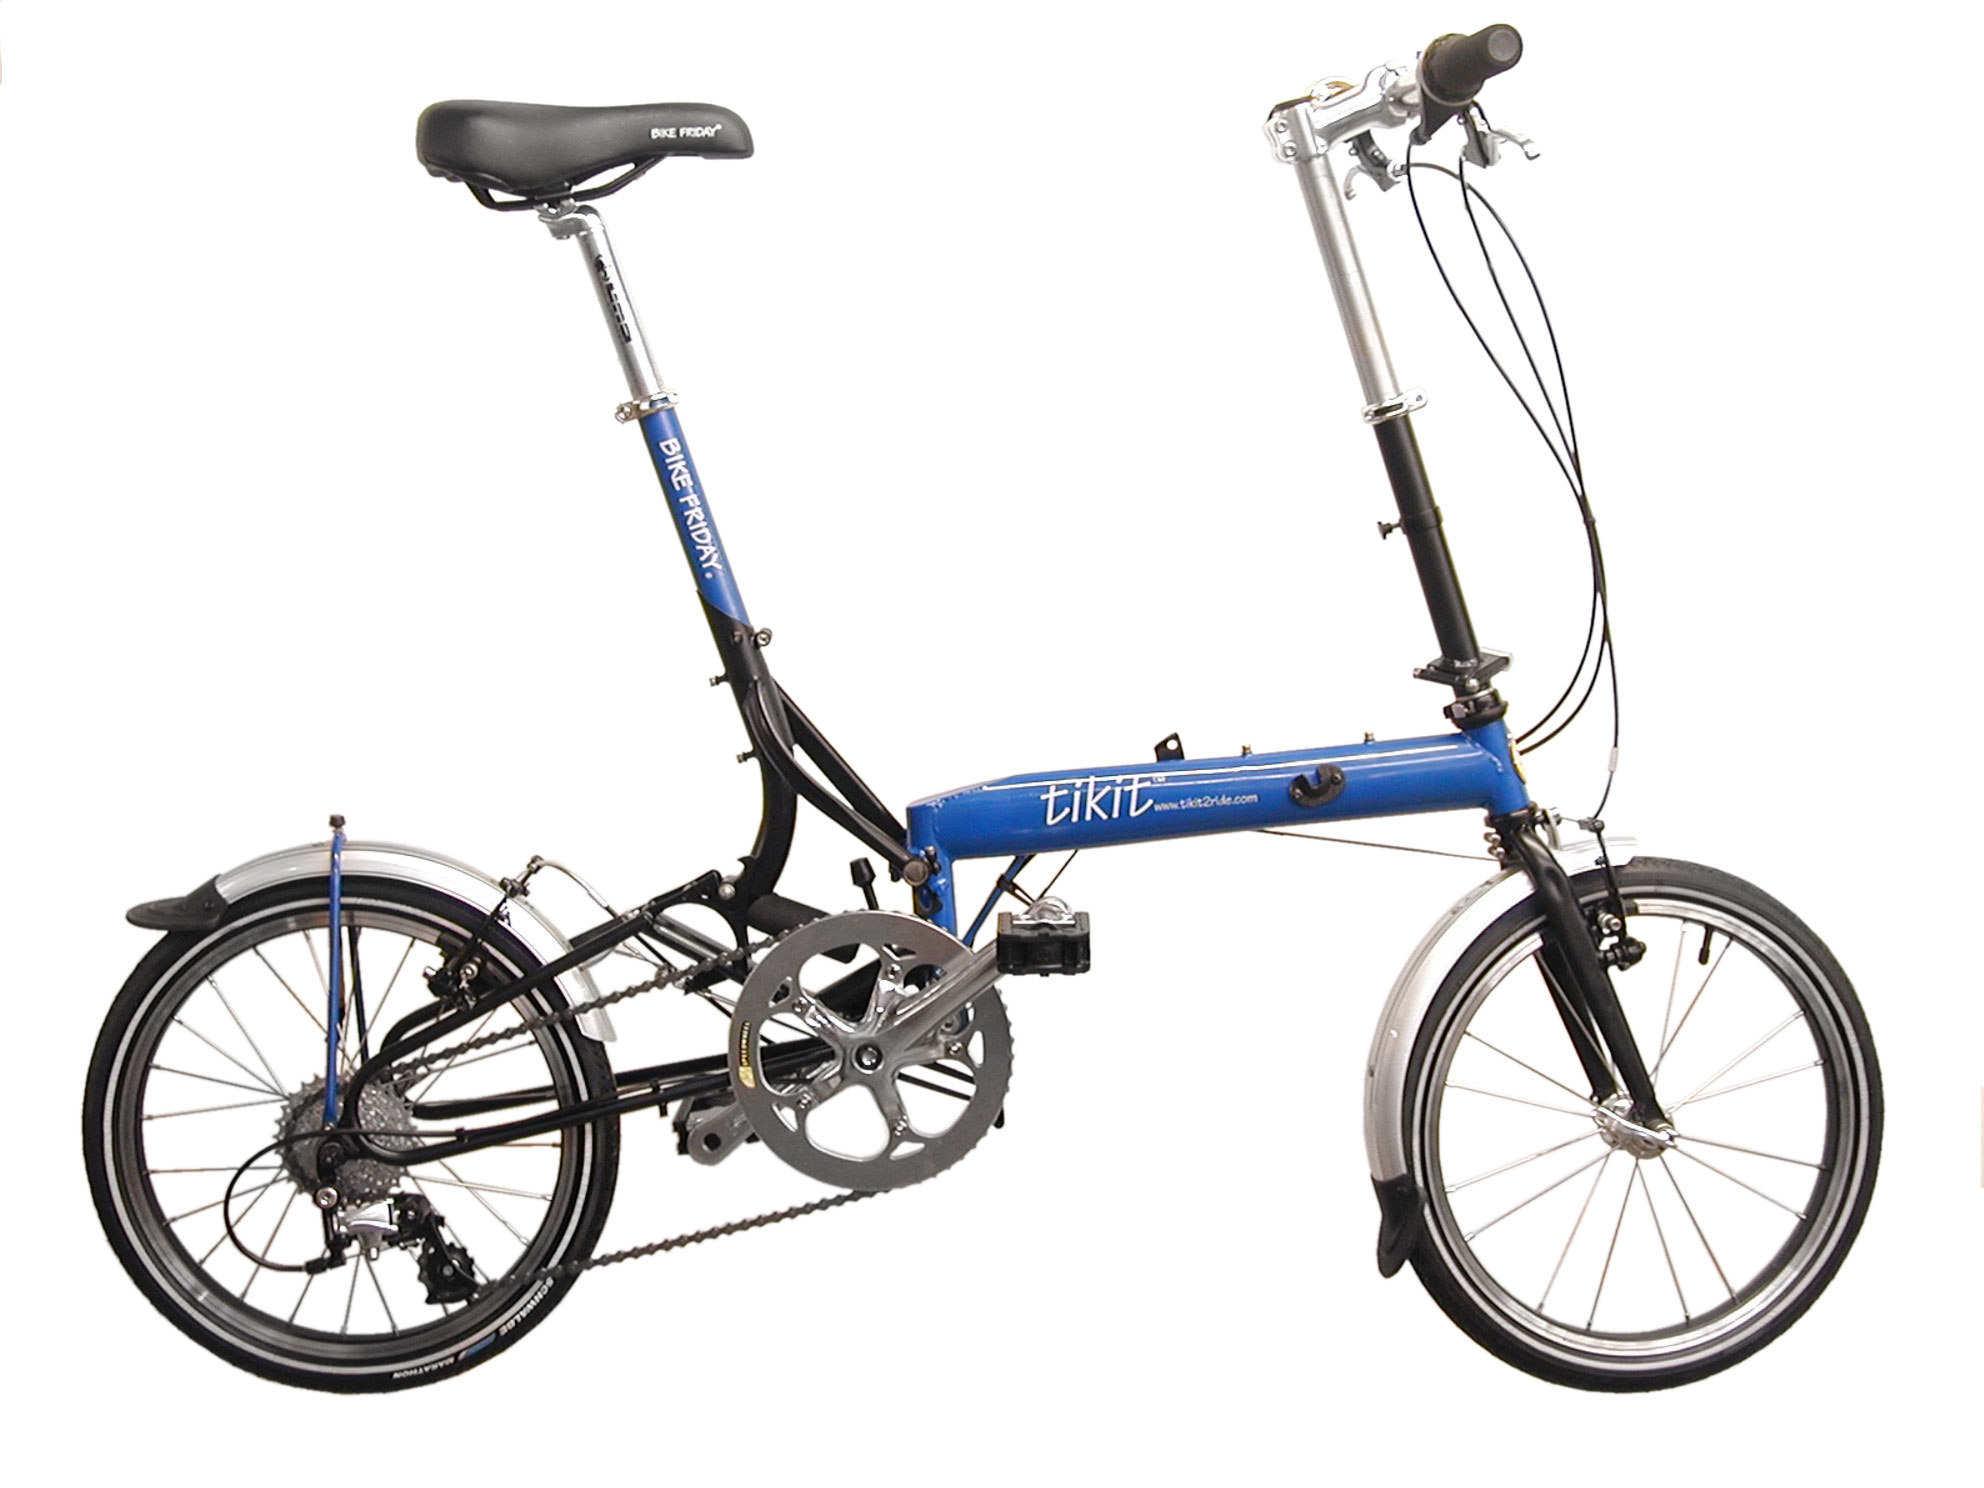 Bike Friday Recalls Tikit Folding Bicycles Due To Fall